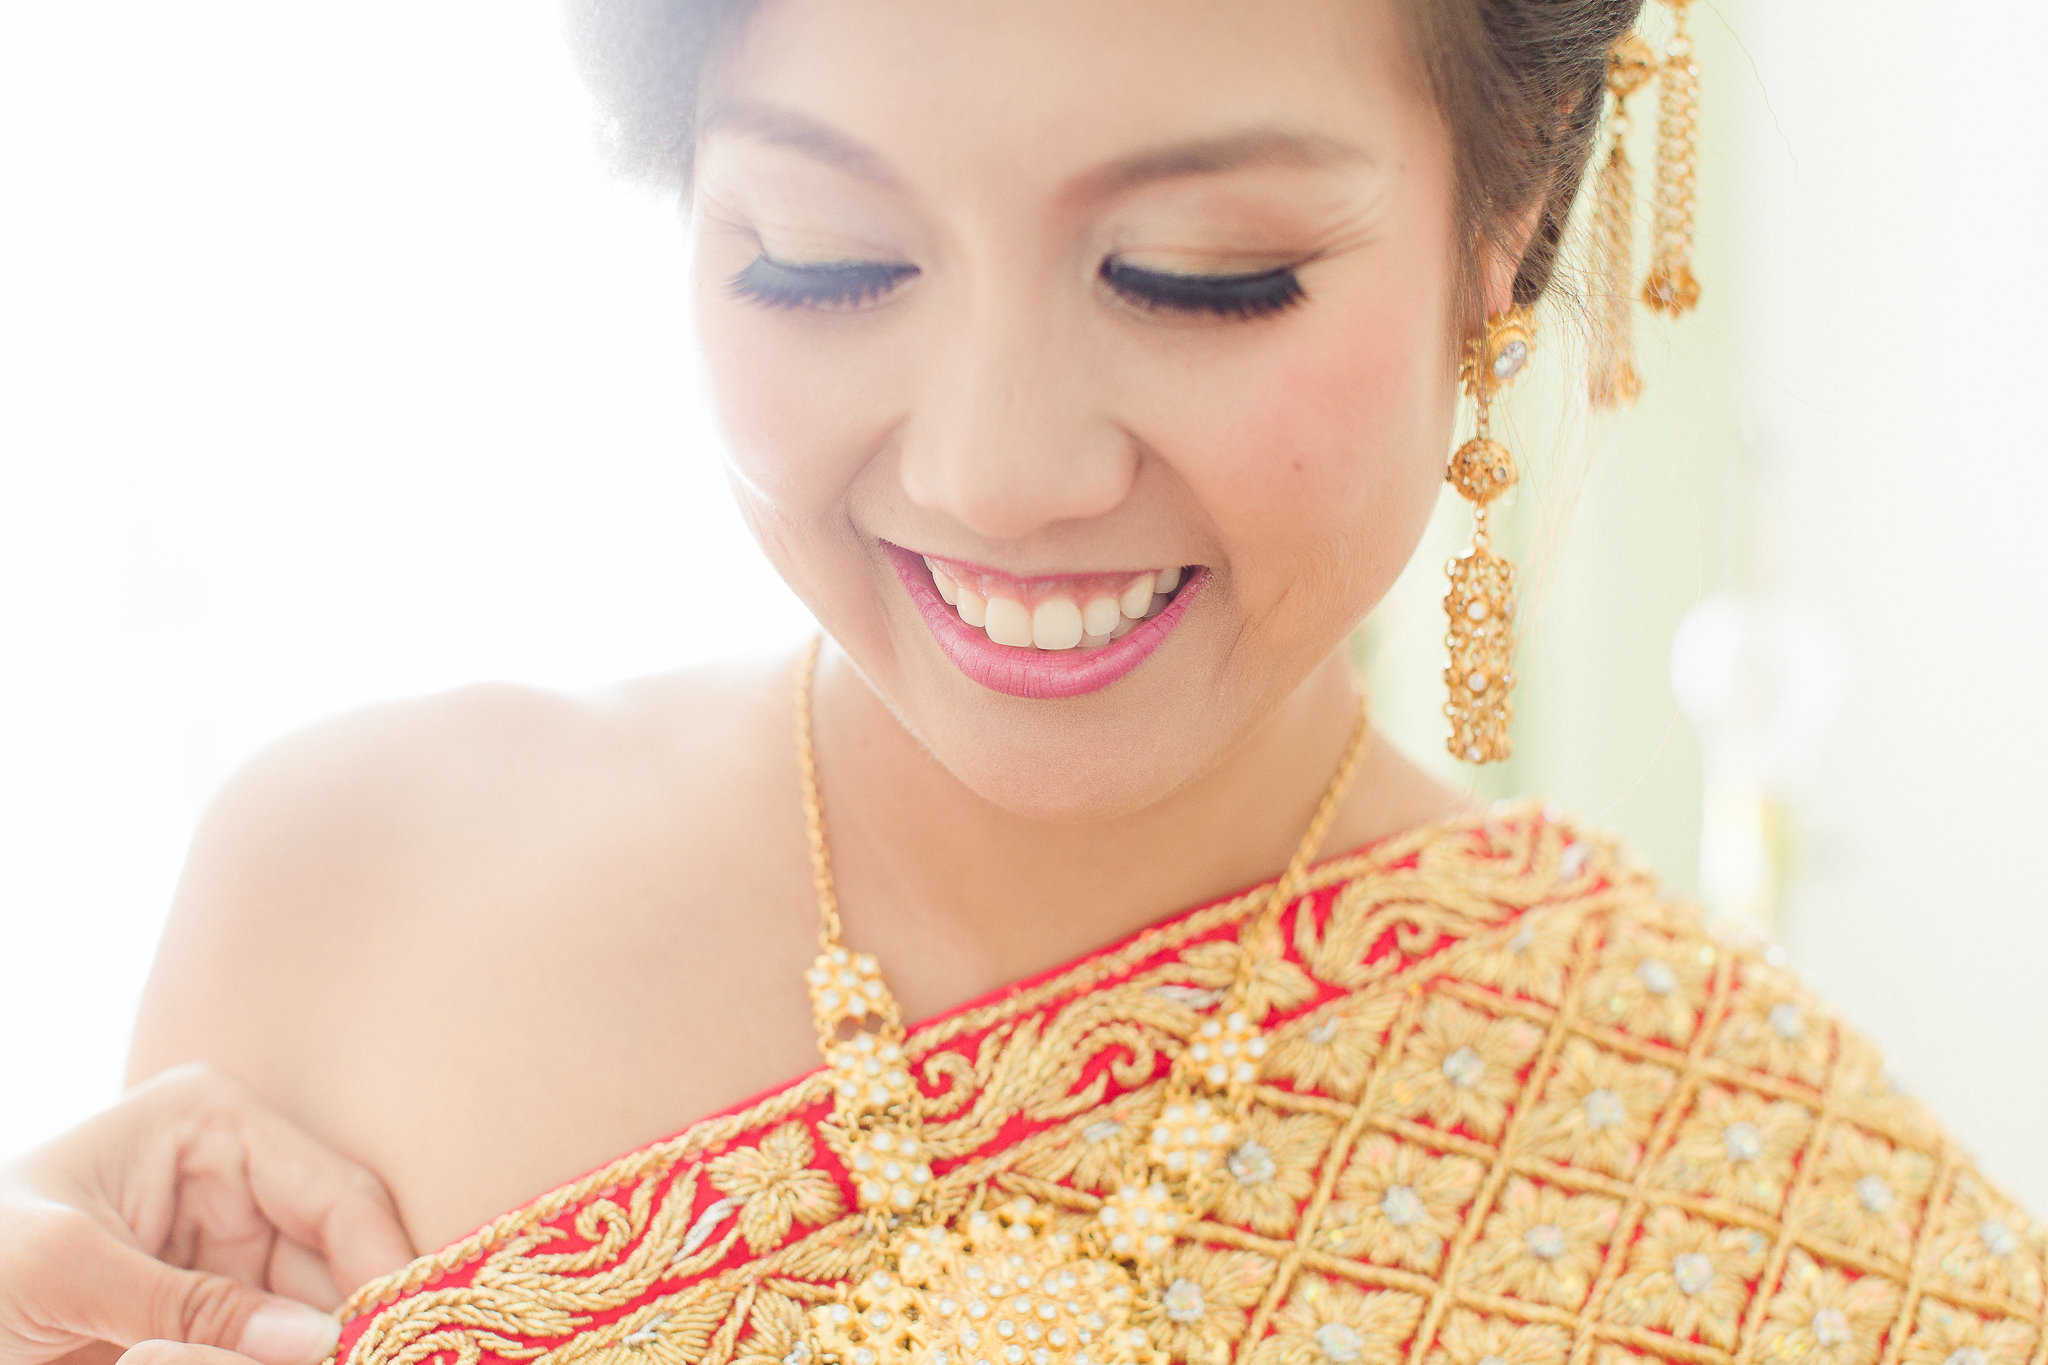 photographe-montreal-mariage-culturel-traditionnel-cambodgien-lisa-renault-photographie-traditional-cultural-cambodian-wedding-52